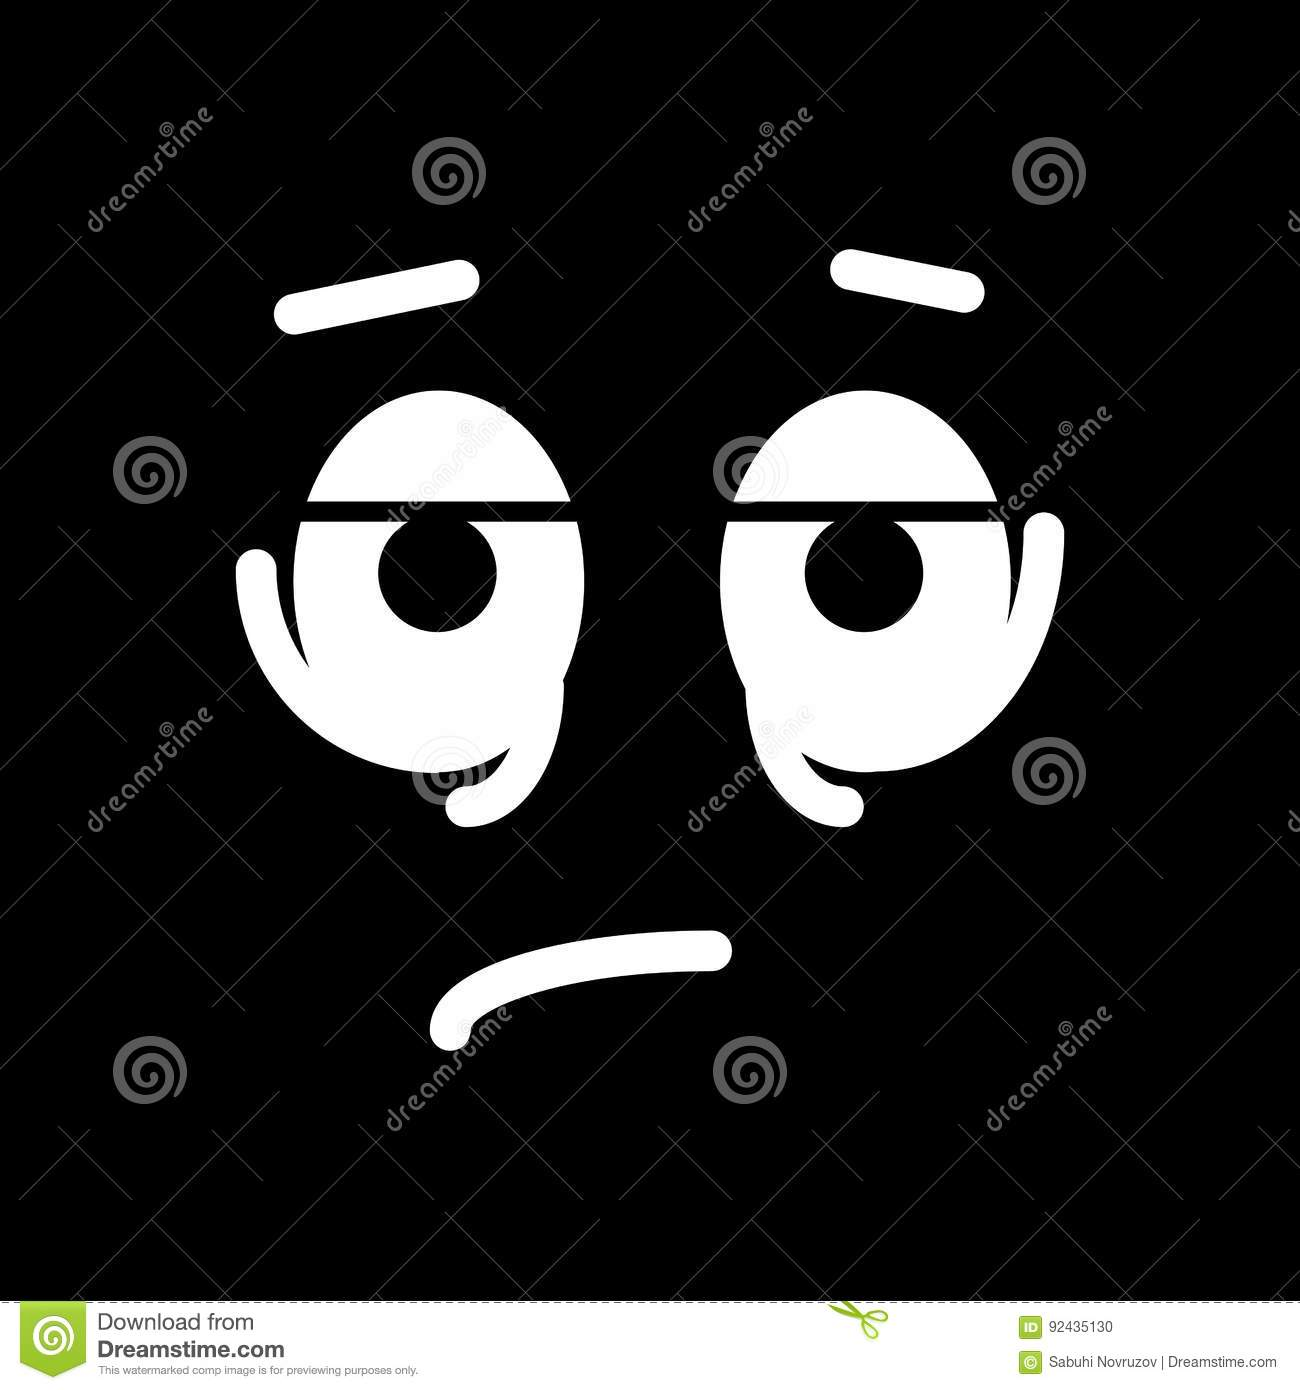 Line Drawing Smiley Face : Grief cartoons illustrations vector stock images